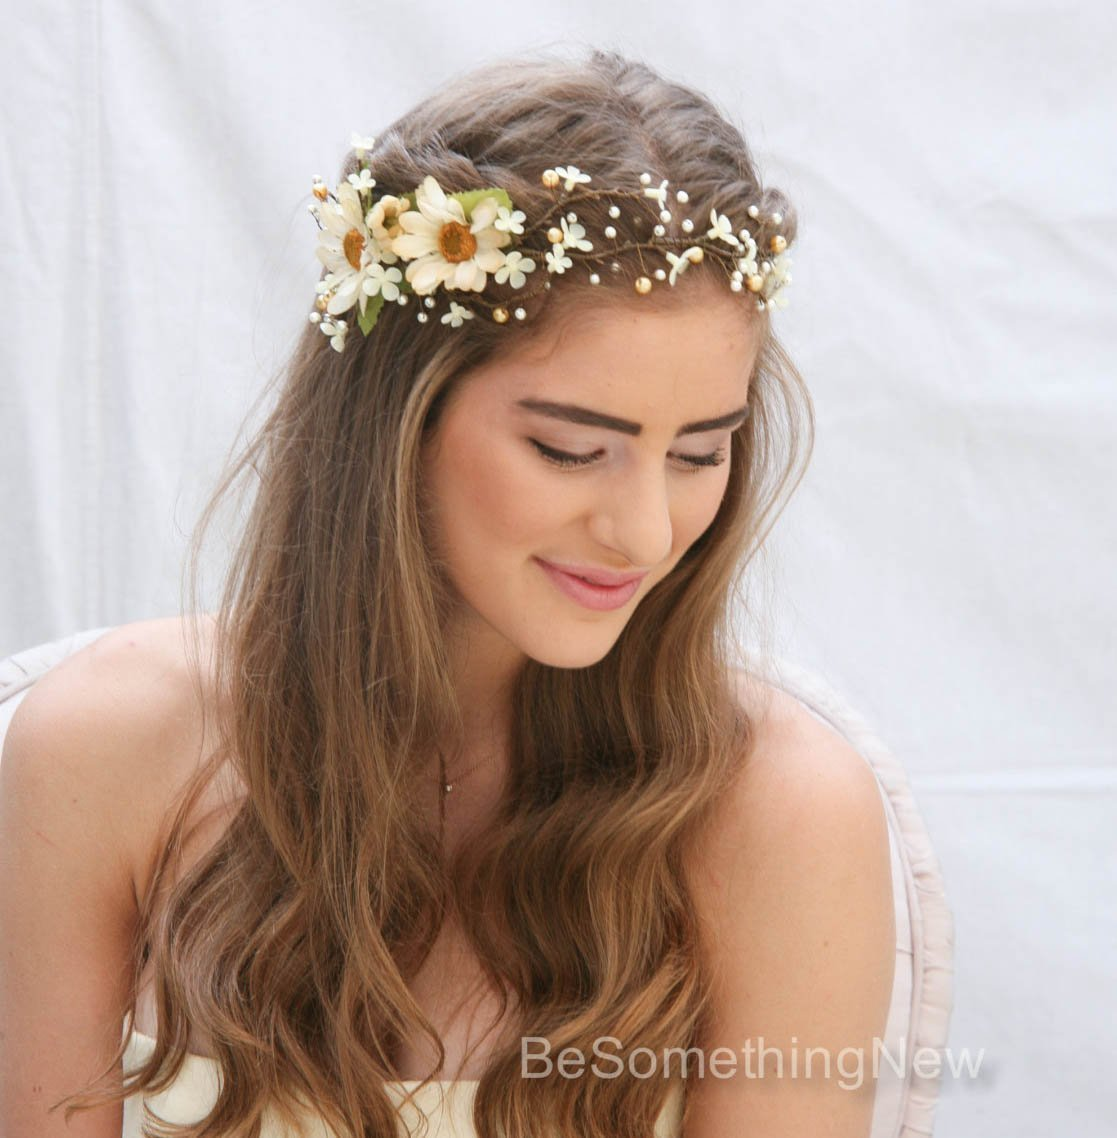 Floral Hair Vine of Ivory Daisies and Pearls, Beaded Woodland Wedding Crown Headpiece, Bridal Hair Accessory